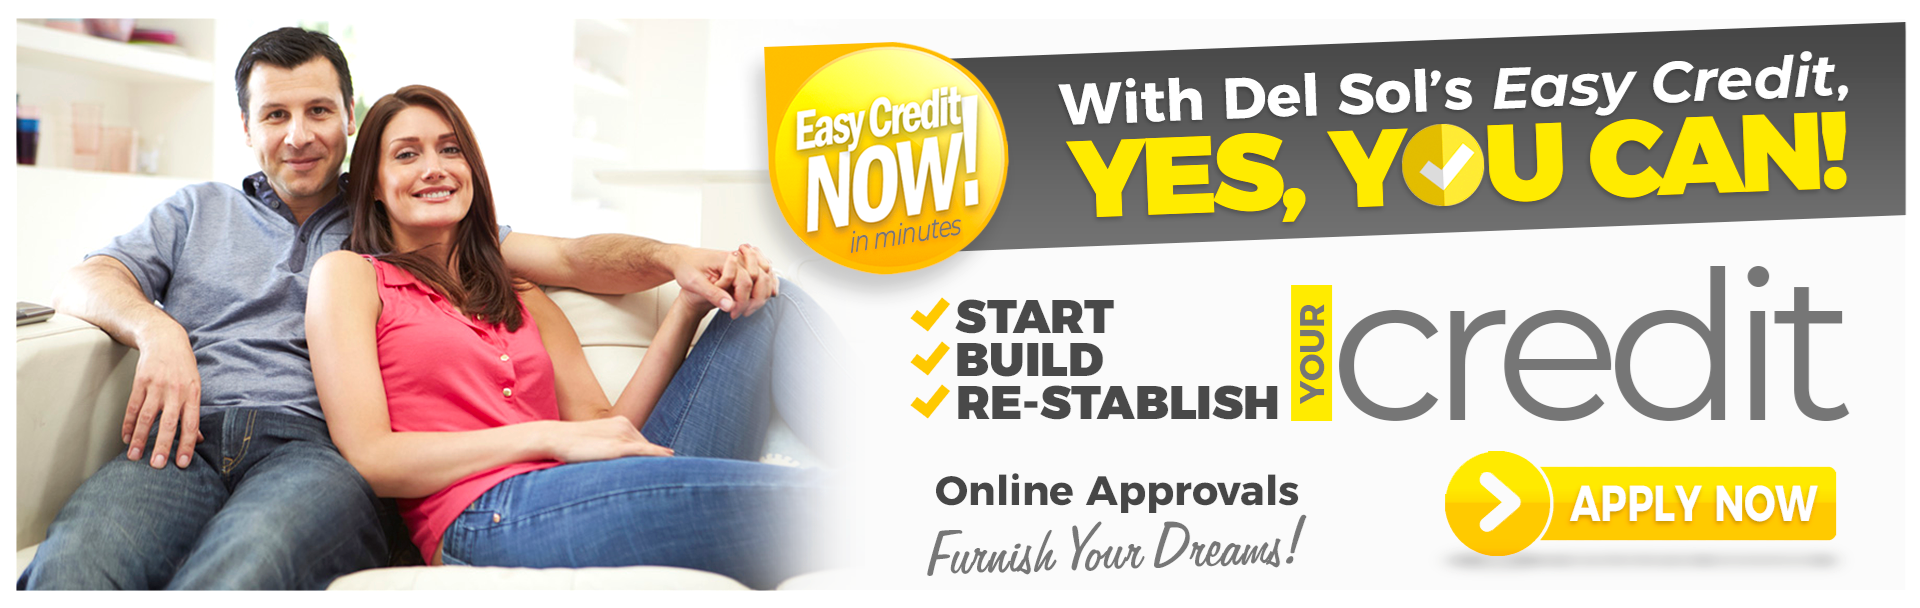 Easy Credit Furniture Store, at Del Sol Furniture, Apply Now